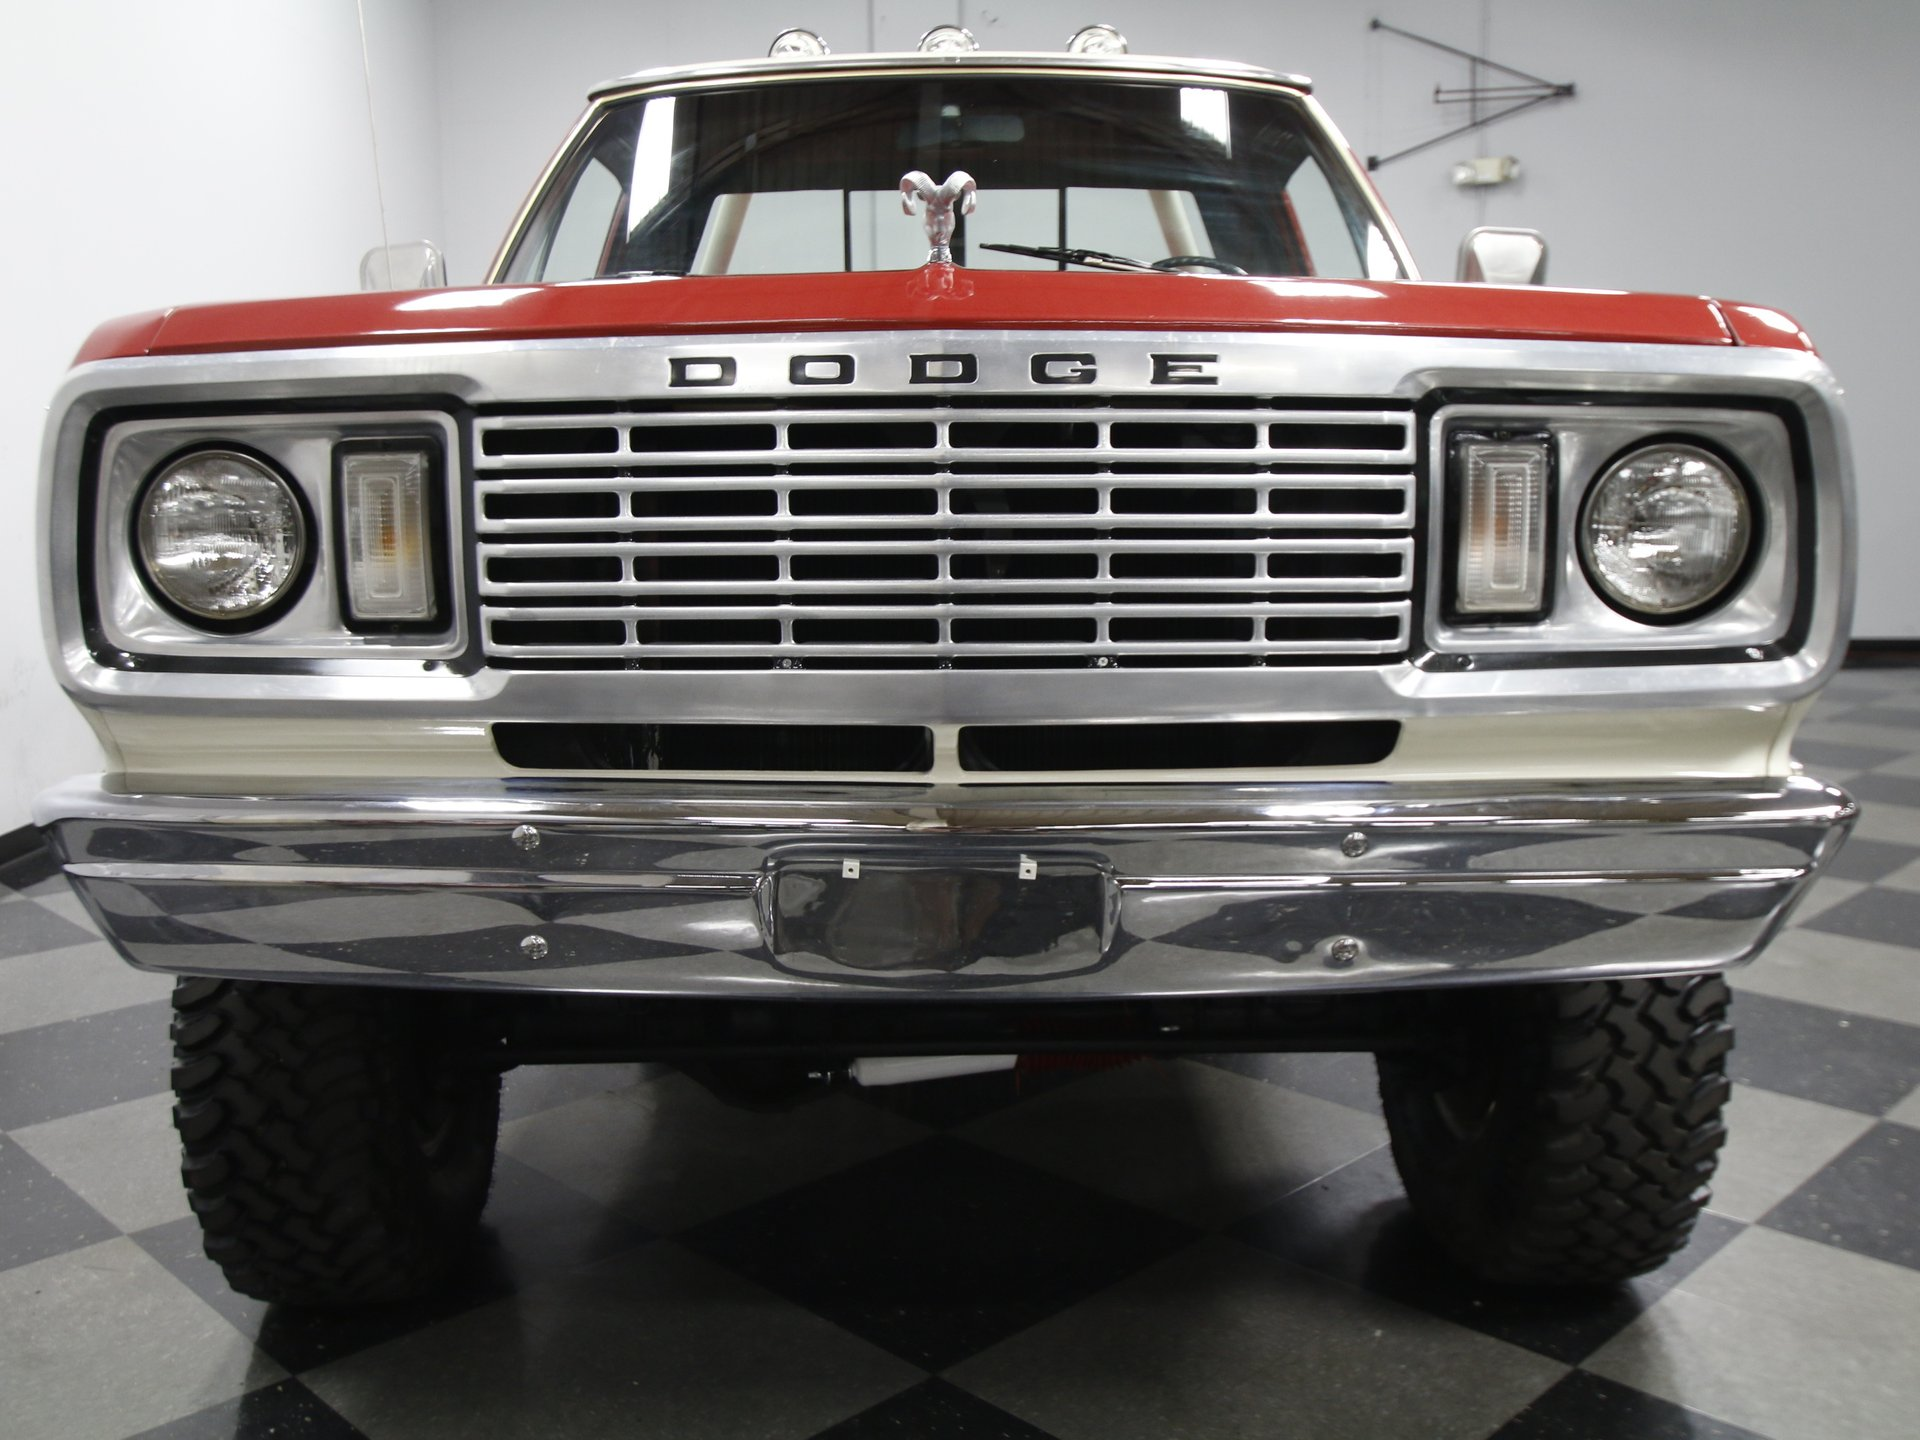 1978 Dodge Power Wagon Classic Cars For Sale Streetside Classics The Nation S 1 Consignment Dealer